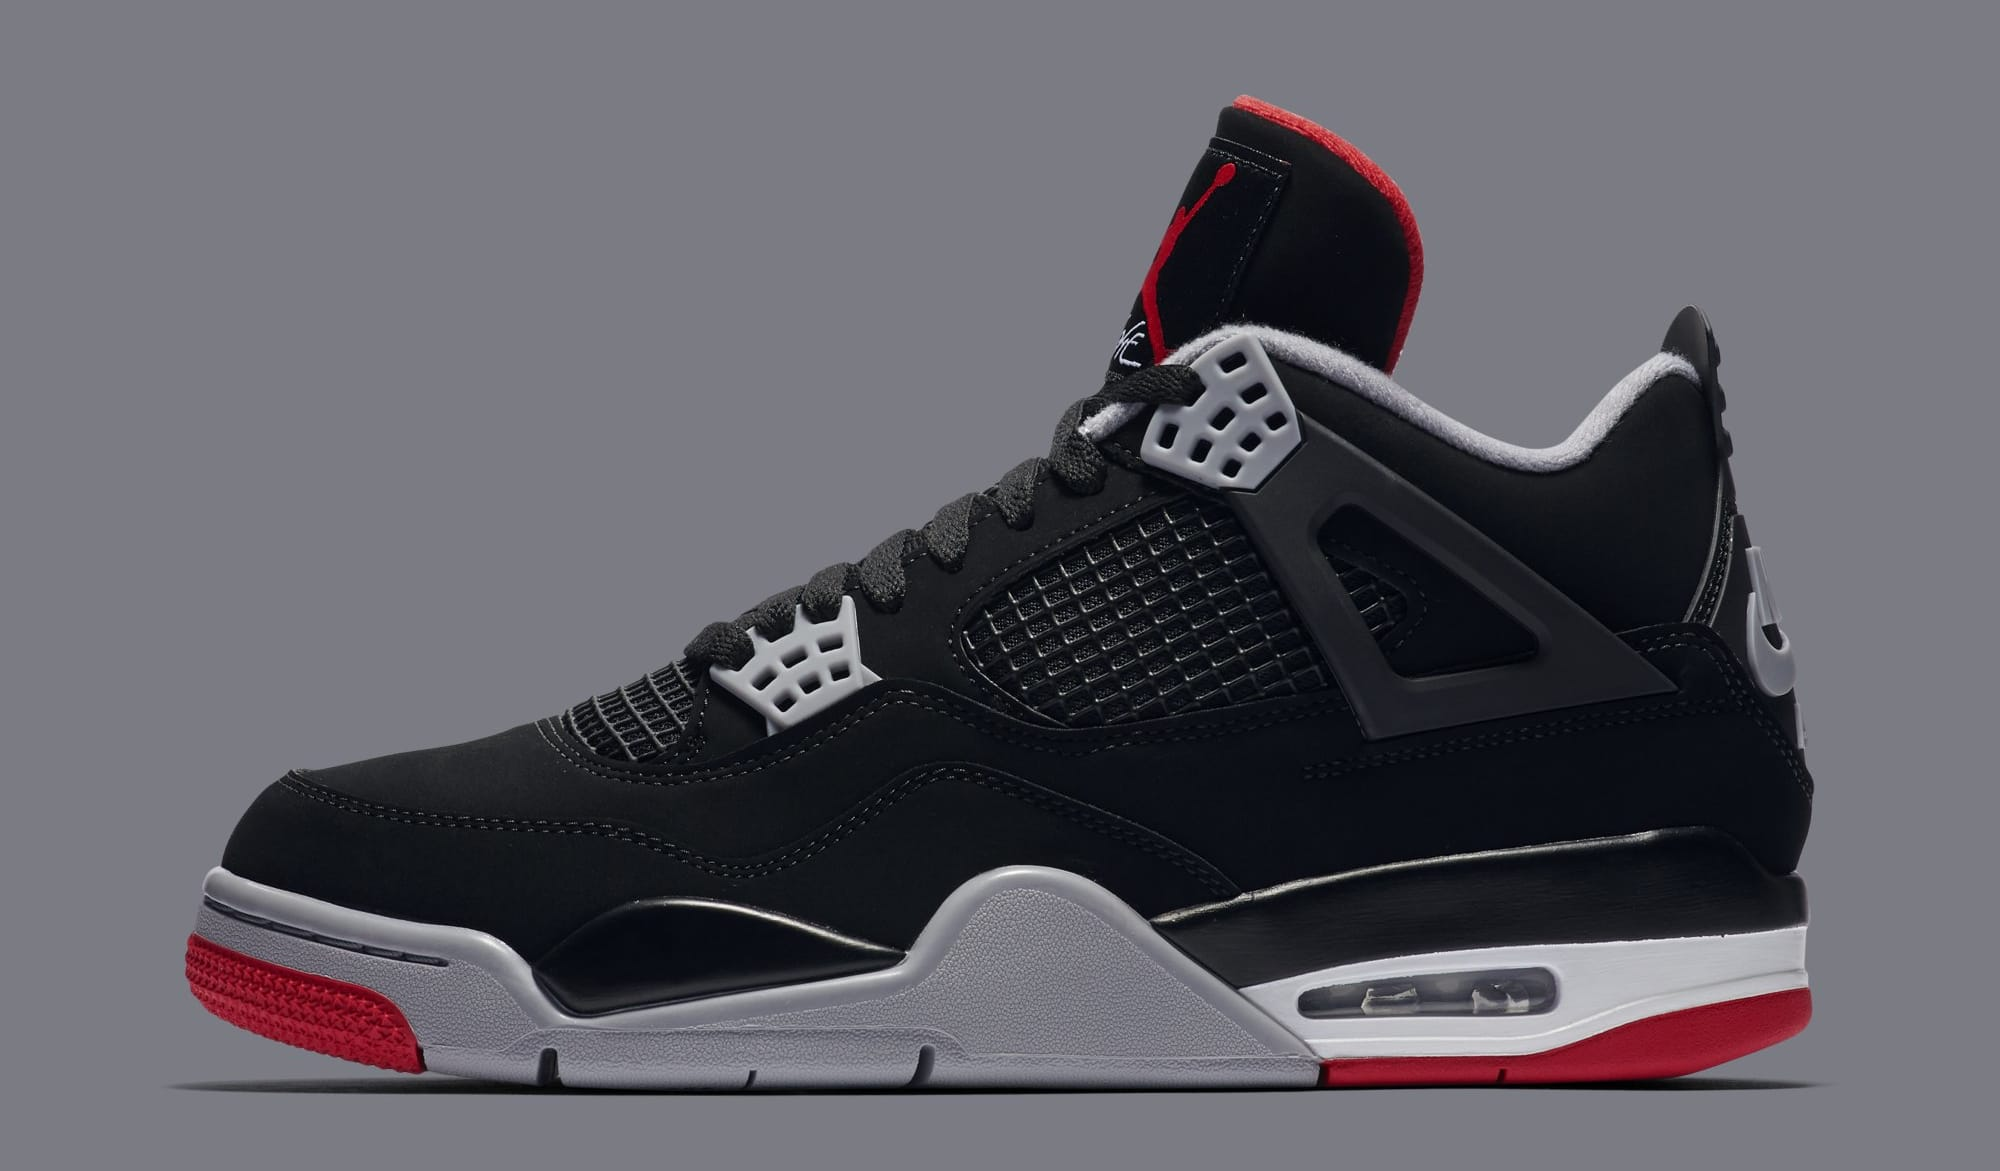 new product 27145 32cf7 Air Jordan 4 Retro  Black Cement Grey Summit White Fire Red  308497-060  Release Date   Sole Collector